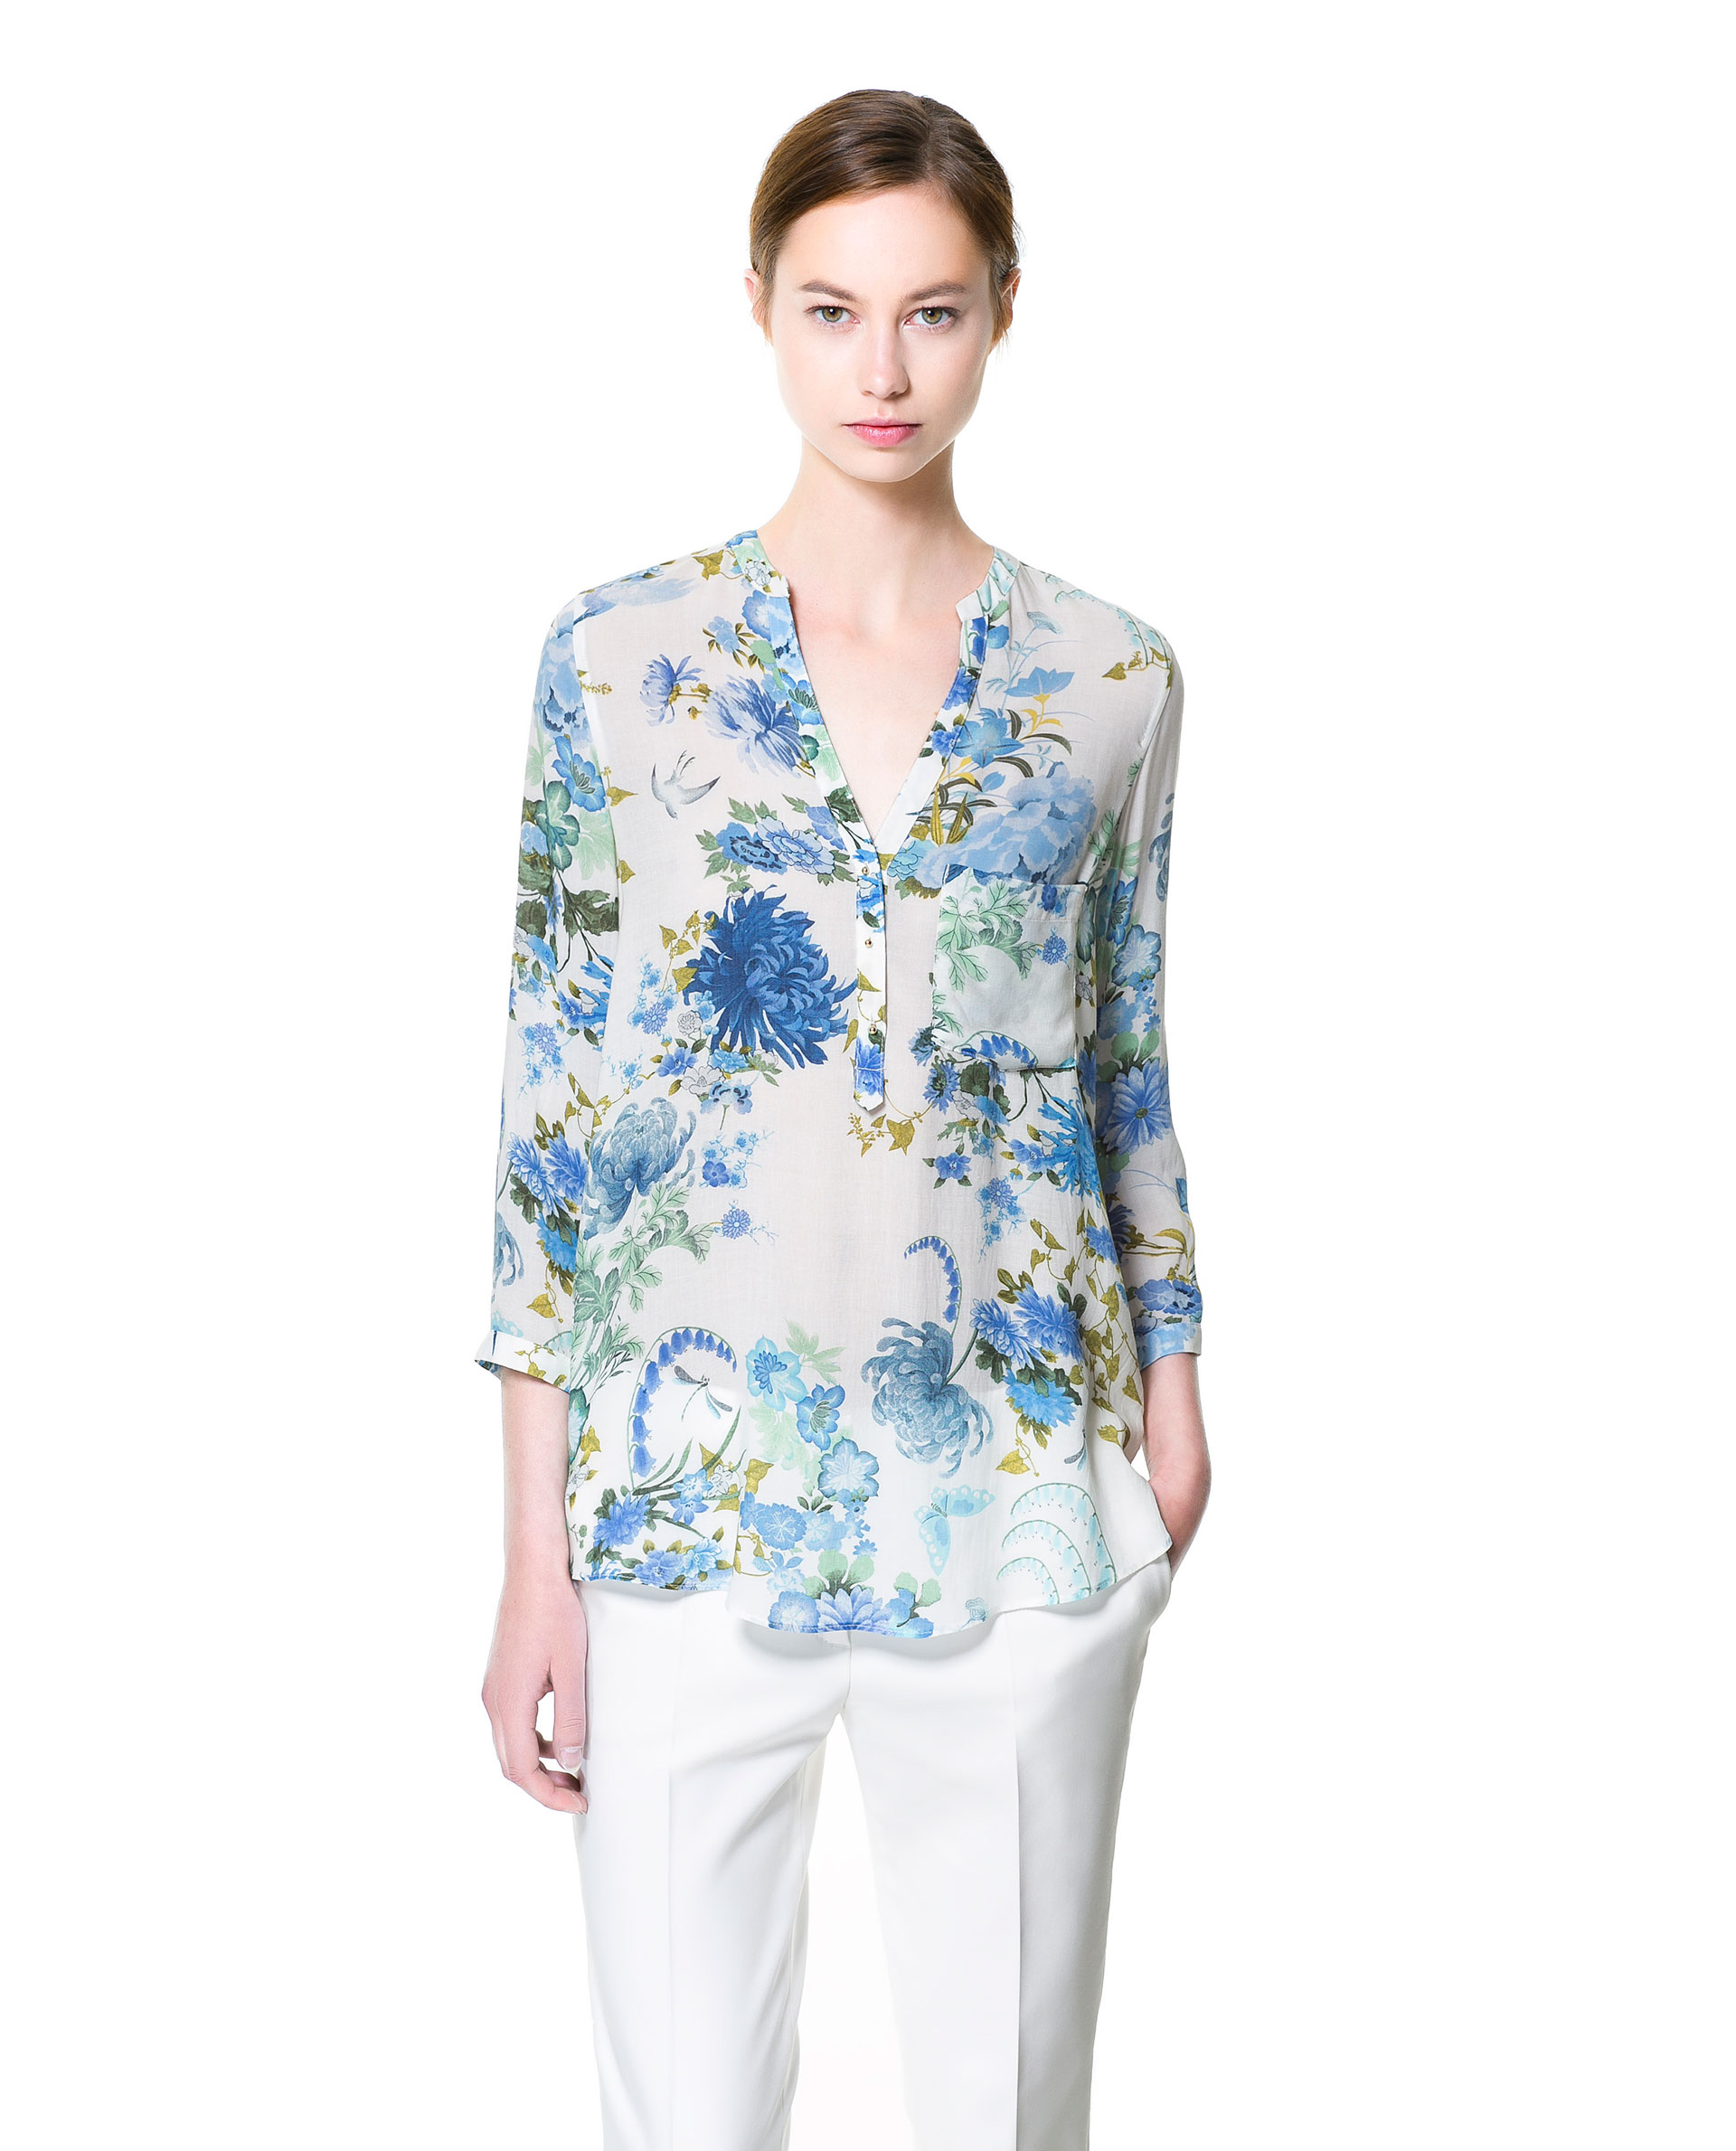 Zara Blue And White Floral Blouse 78